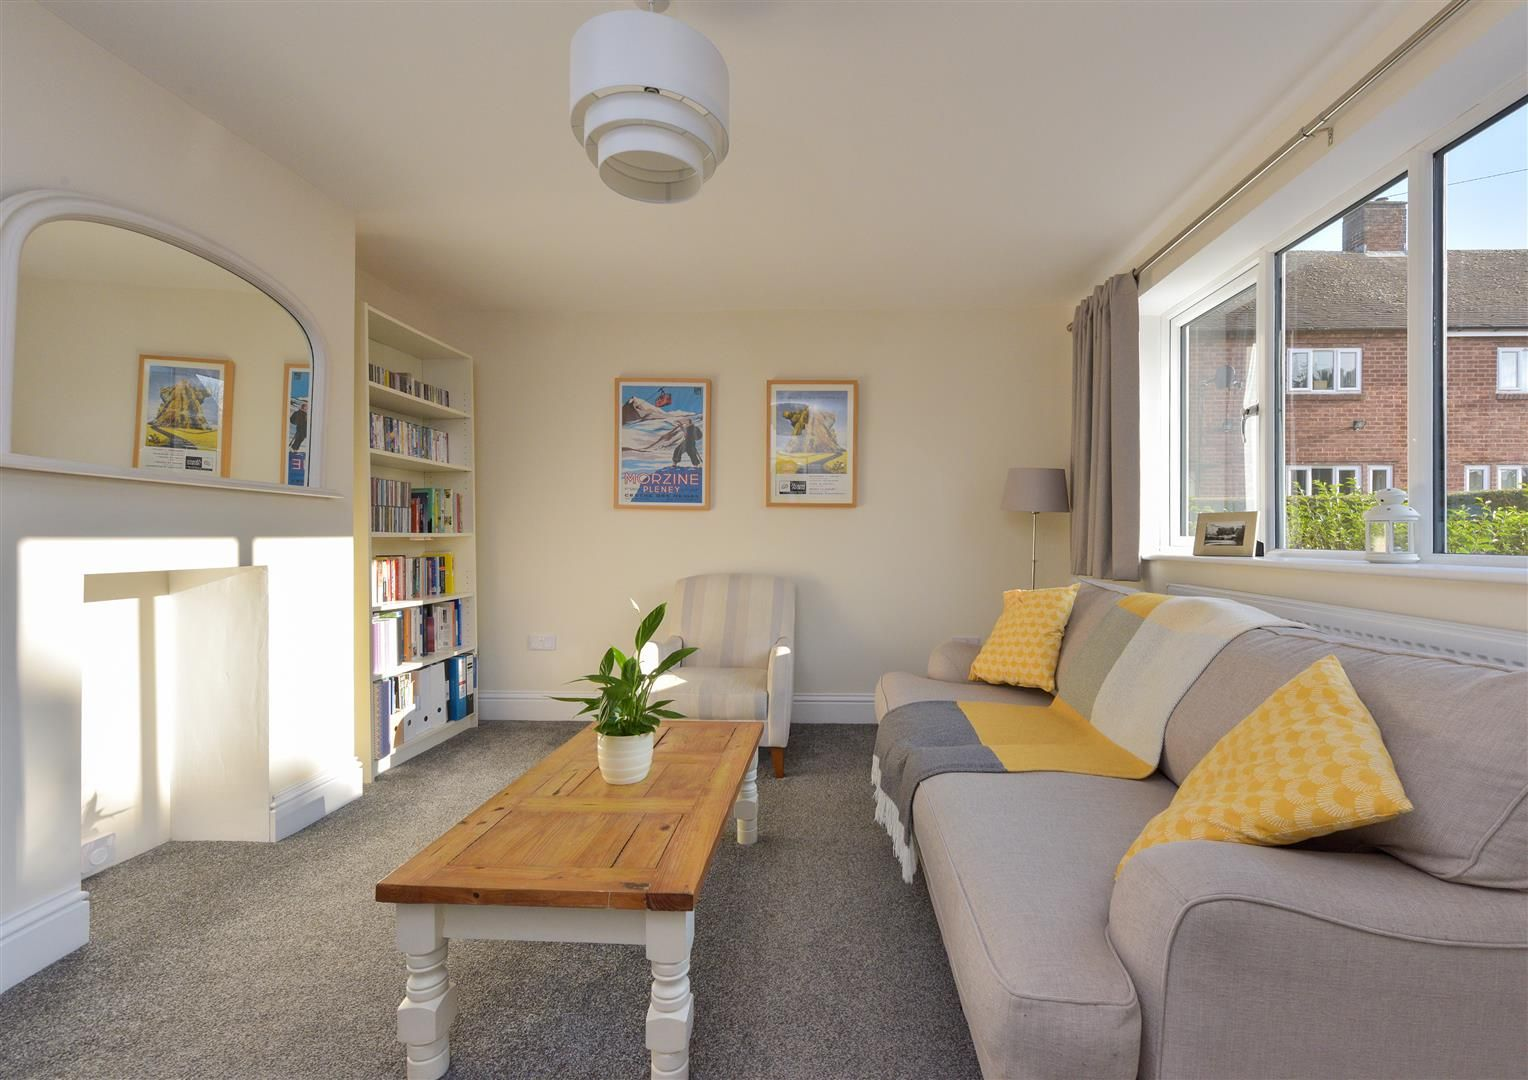 3 bed house for sale in Clent 11